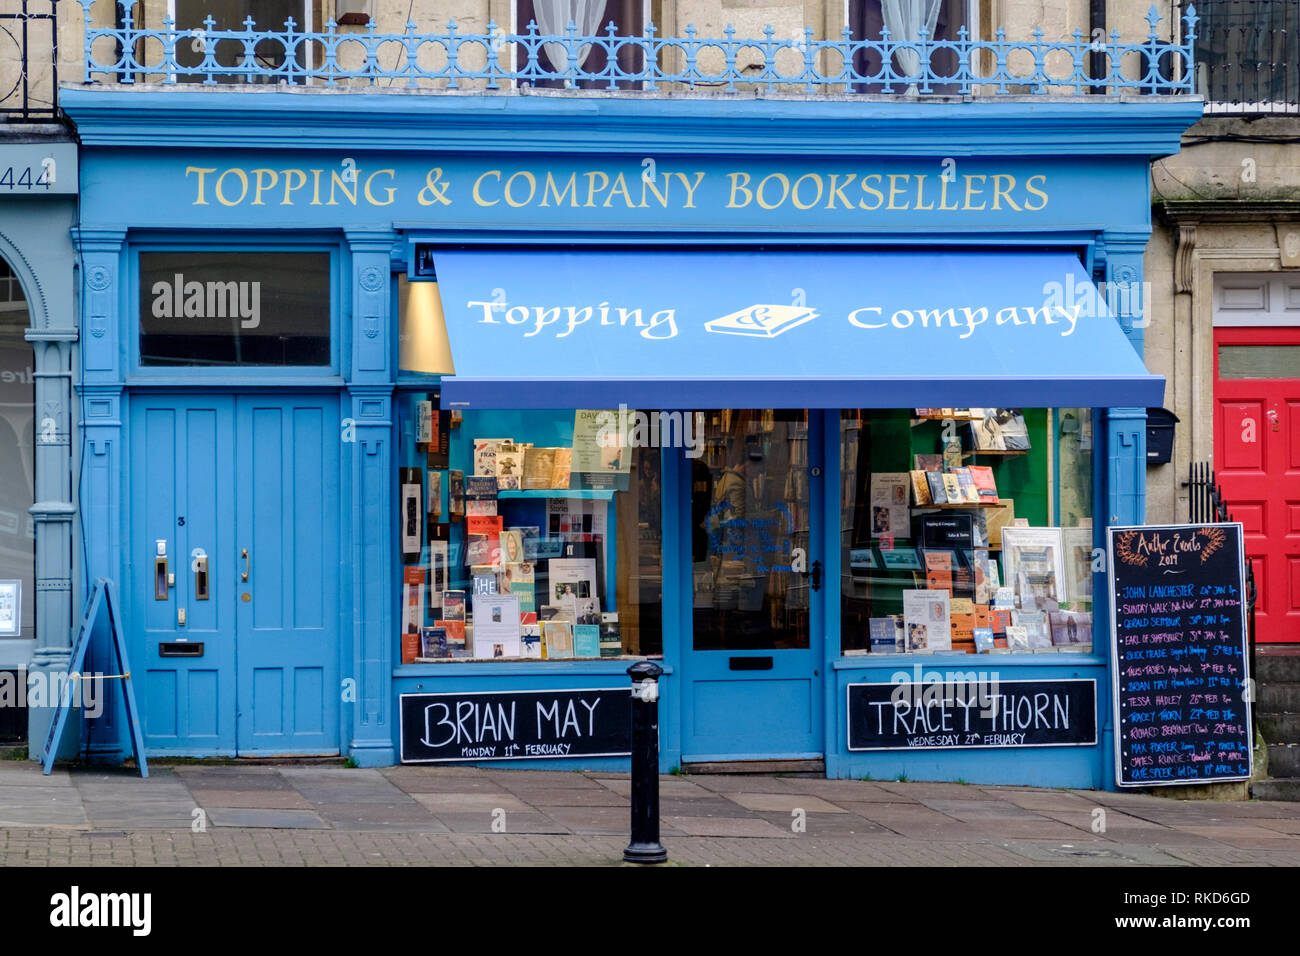 Around the historic city of Bath, somerset England UK Topping and Co Book sellers. - Stock Image